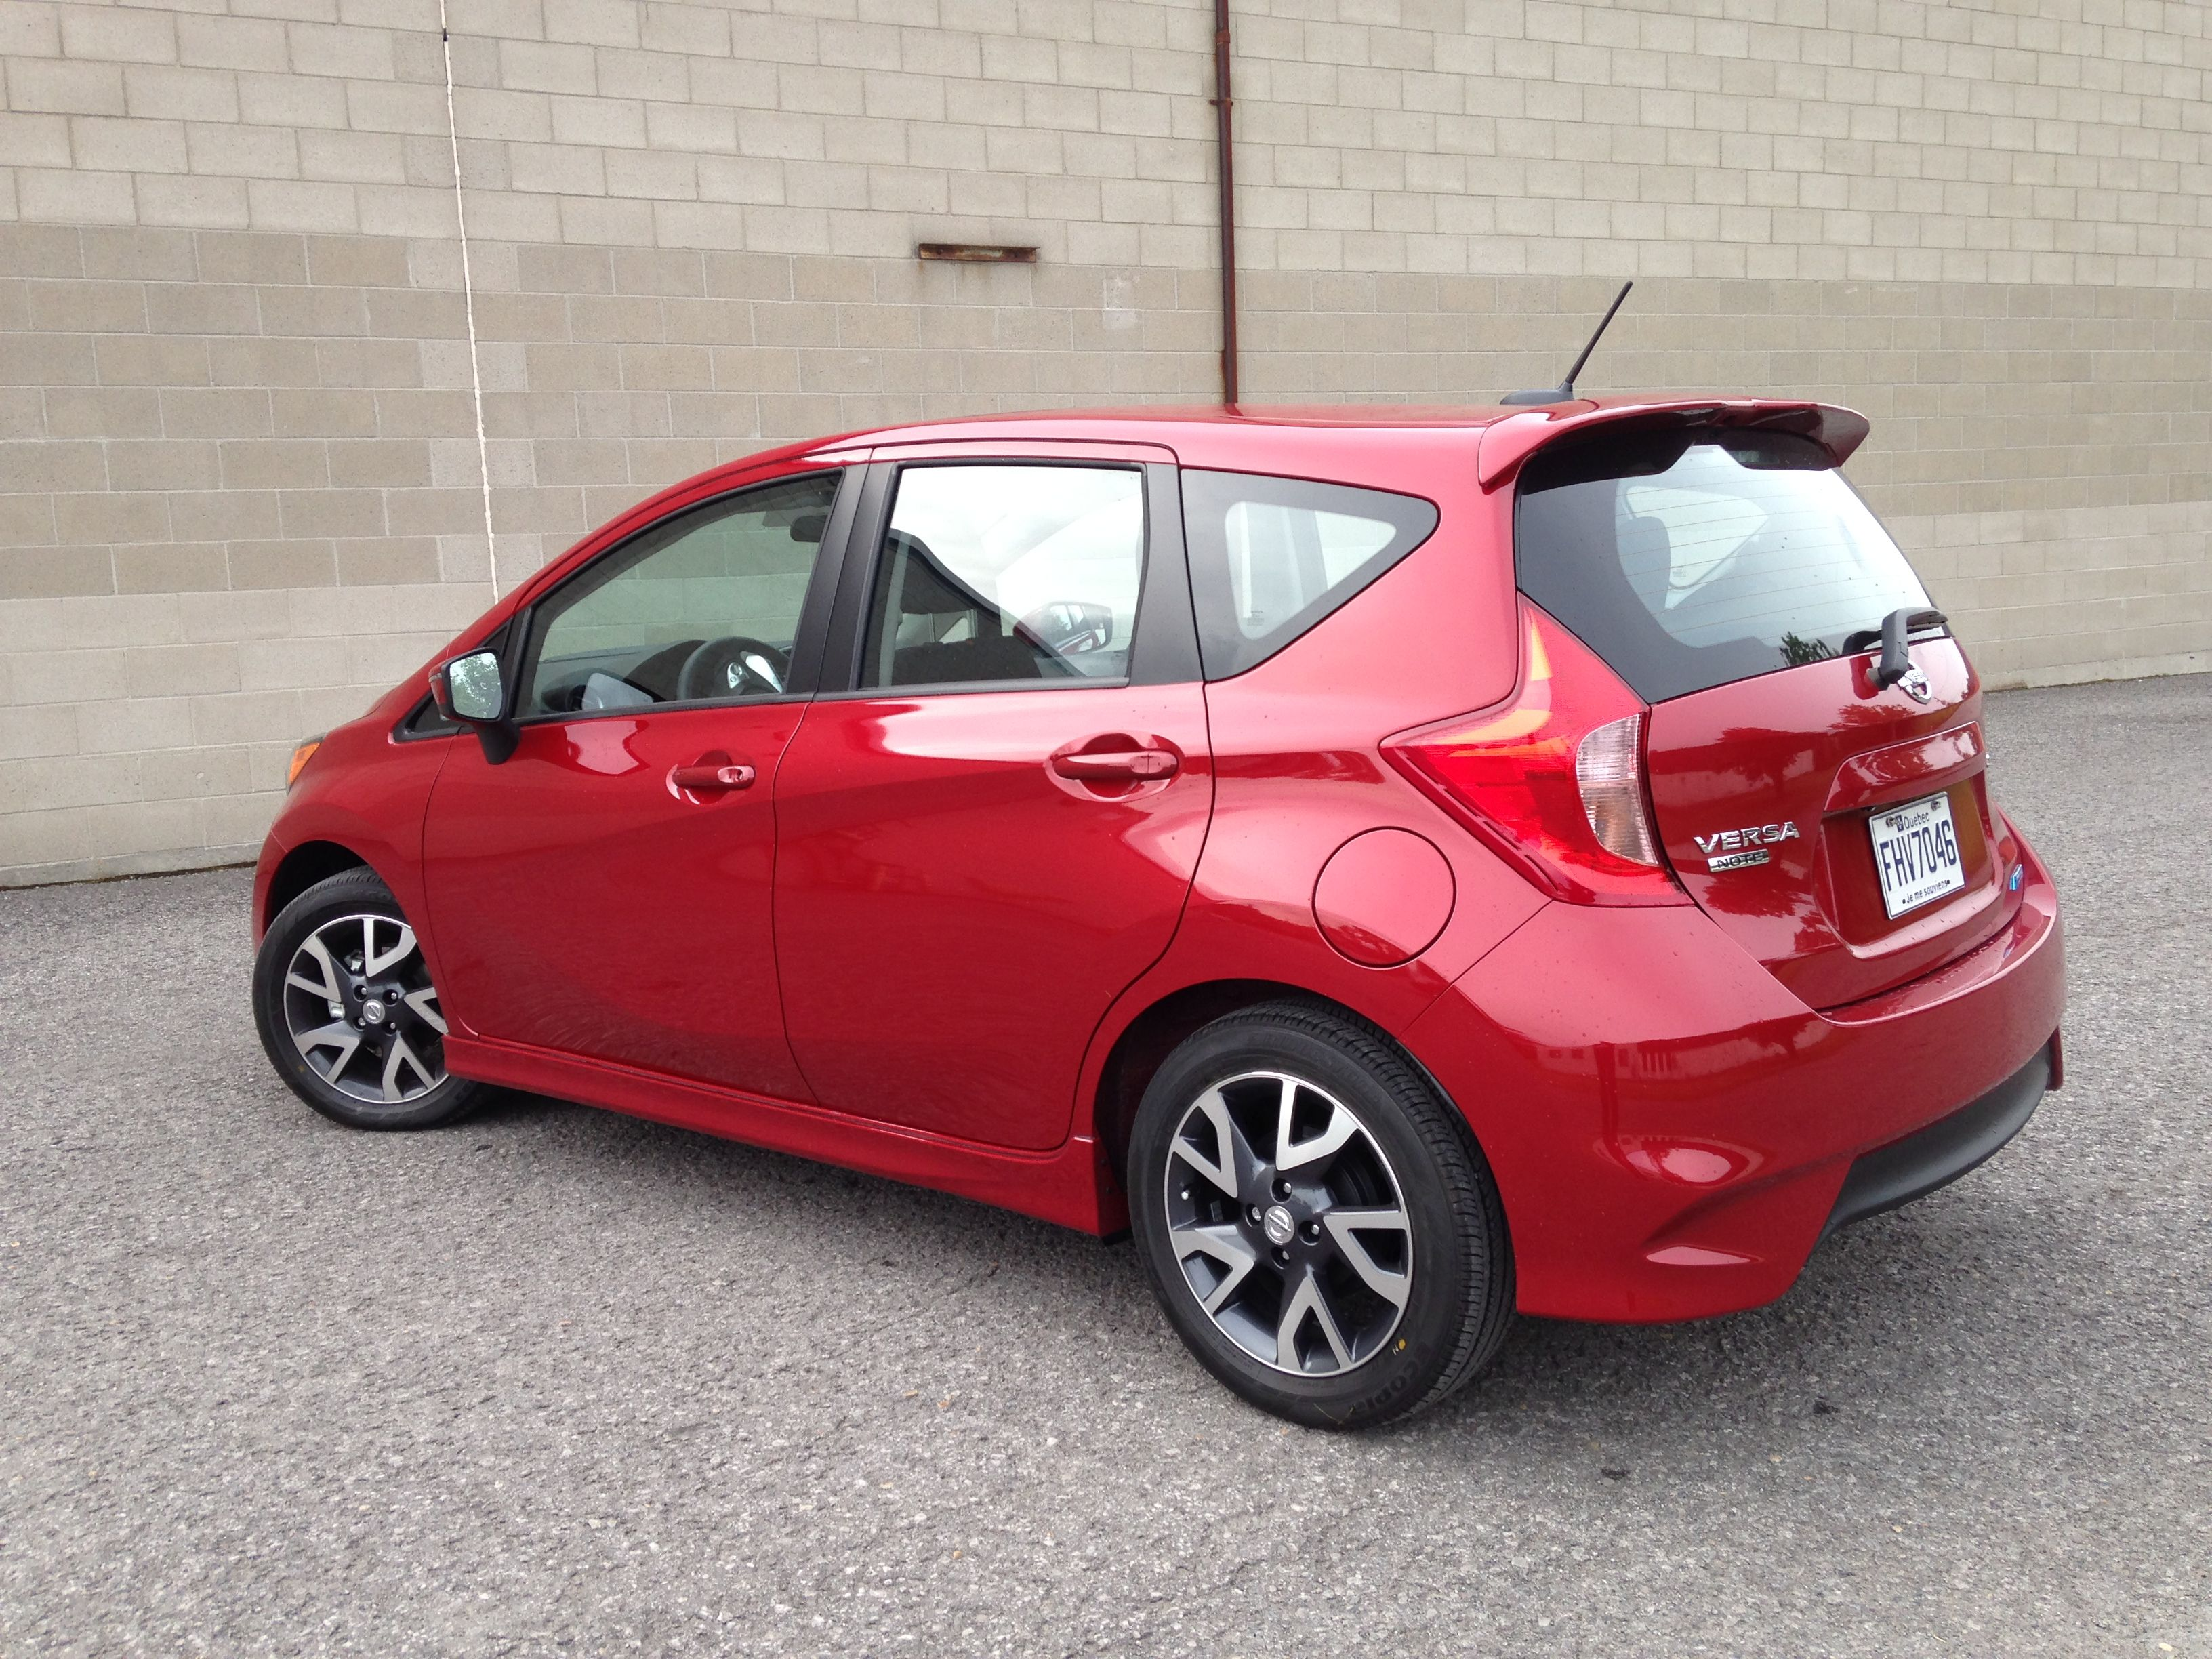 2015 nissan versa note sr review ecolodriver. Black Bedroom Furniture Sets. Home Design Ideas